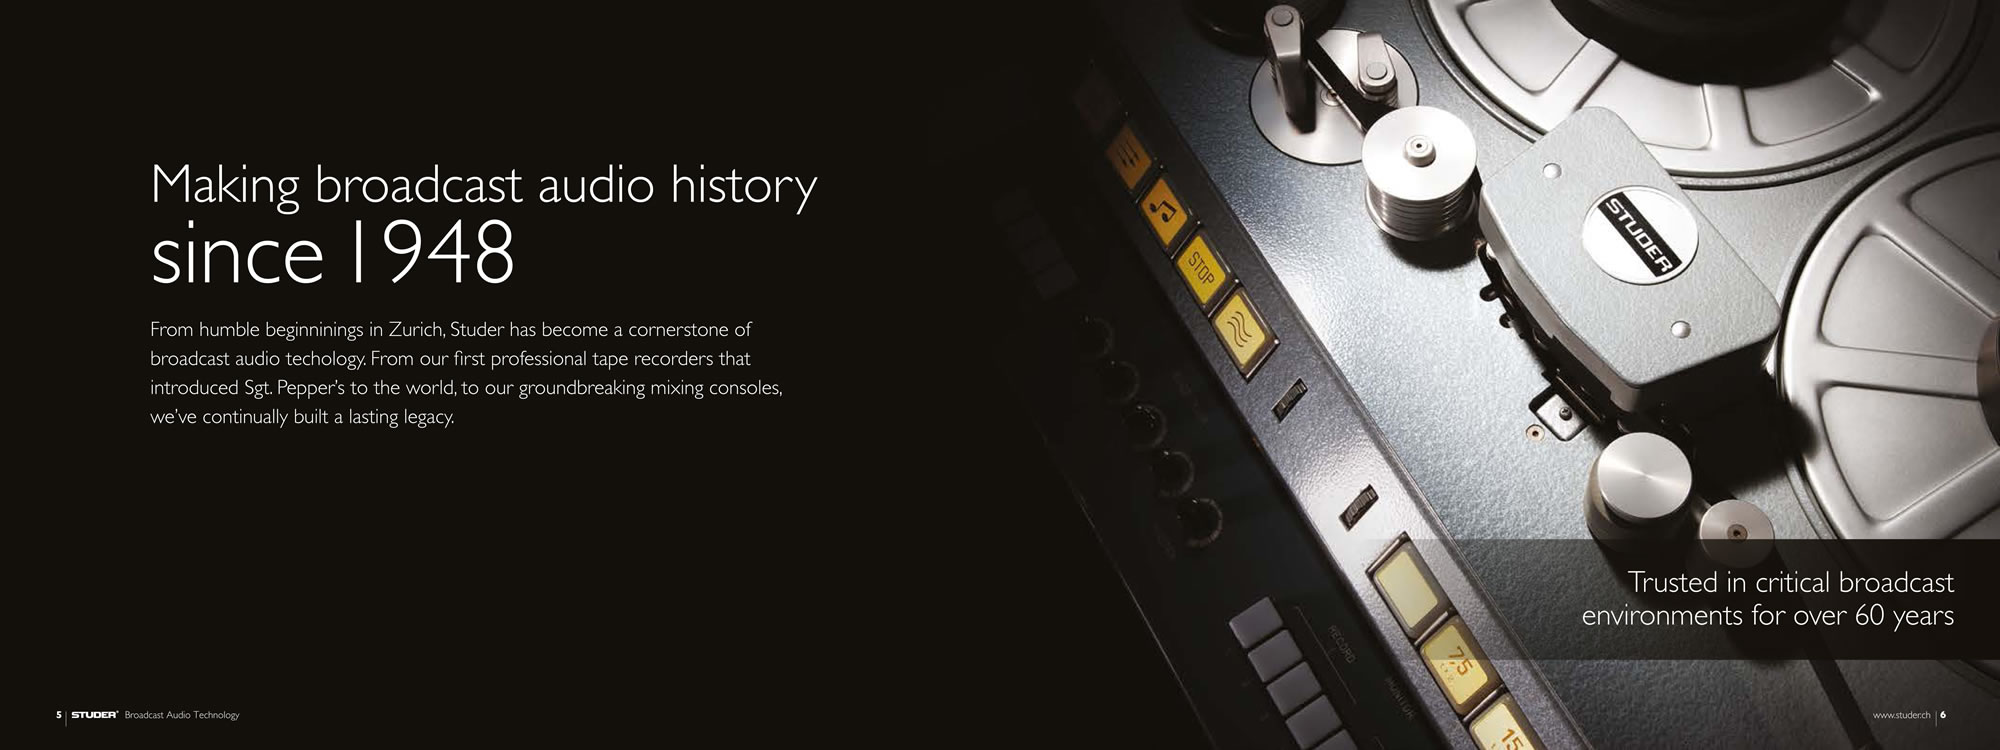 Making broadcast audio history since 1948